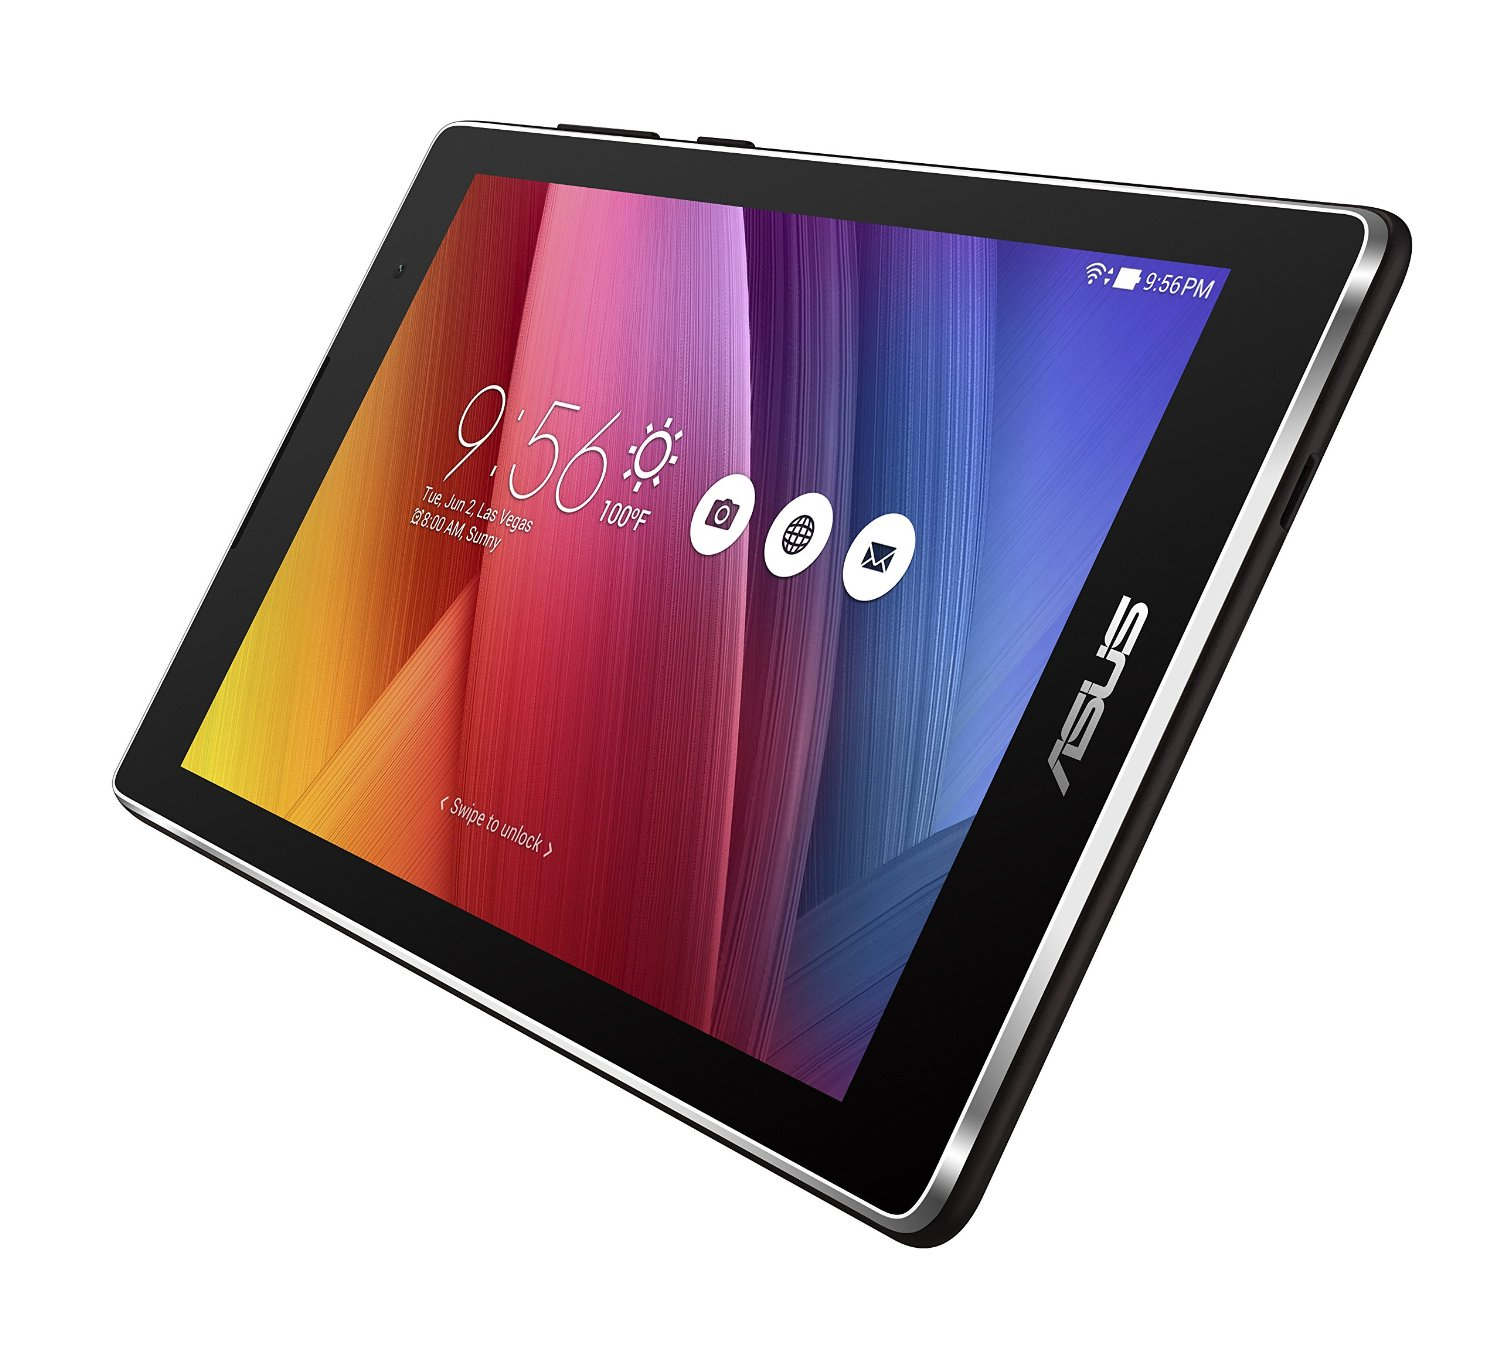 zenpad c review pre order z170c specs where to buy z170cg. Black Bedroom Furniture Sets. Home Design Ideas